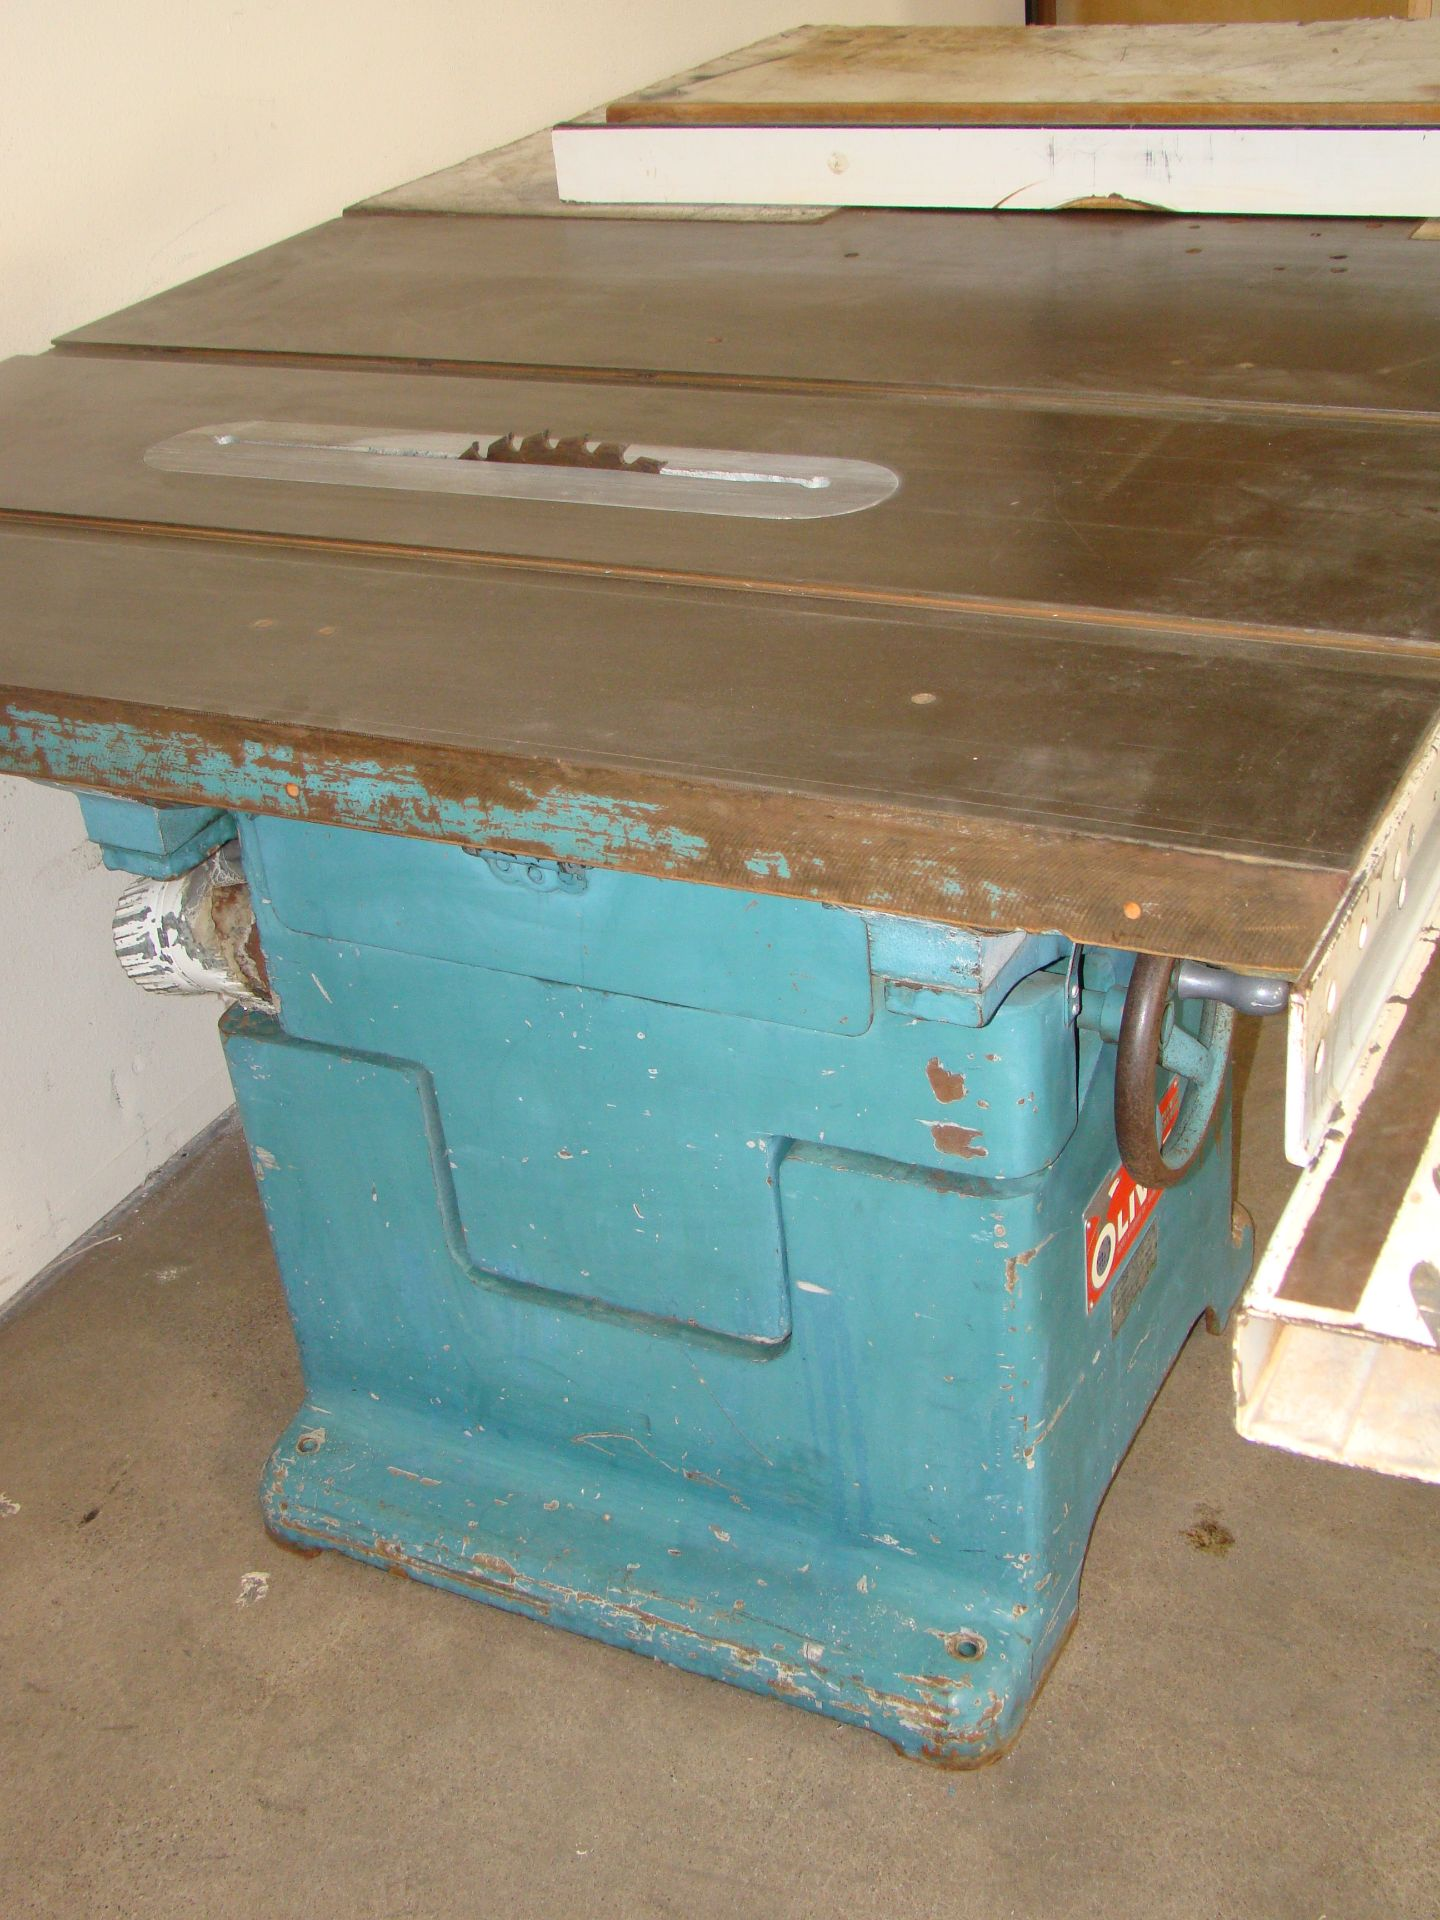 "Oliver 14"" Table Saw, W/ 50"" Biesemeyer Rails Fence 5HP 220 Volts 3 Phase Motor - Image 4 of 7"